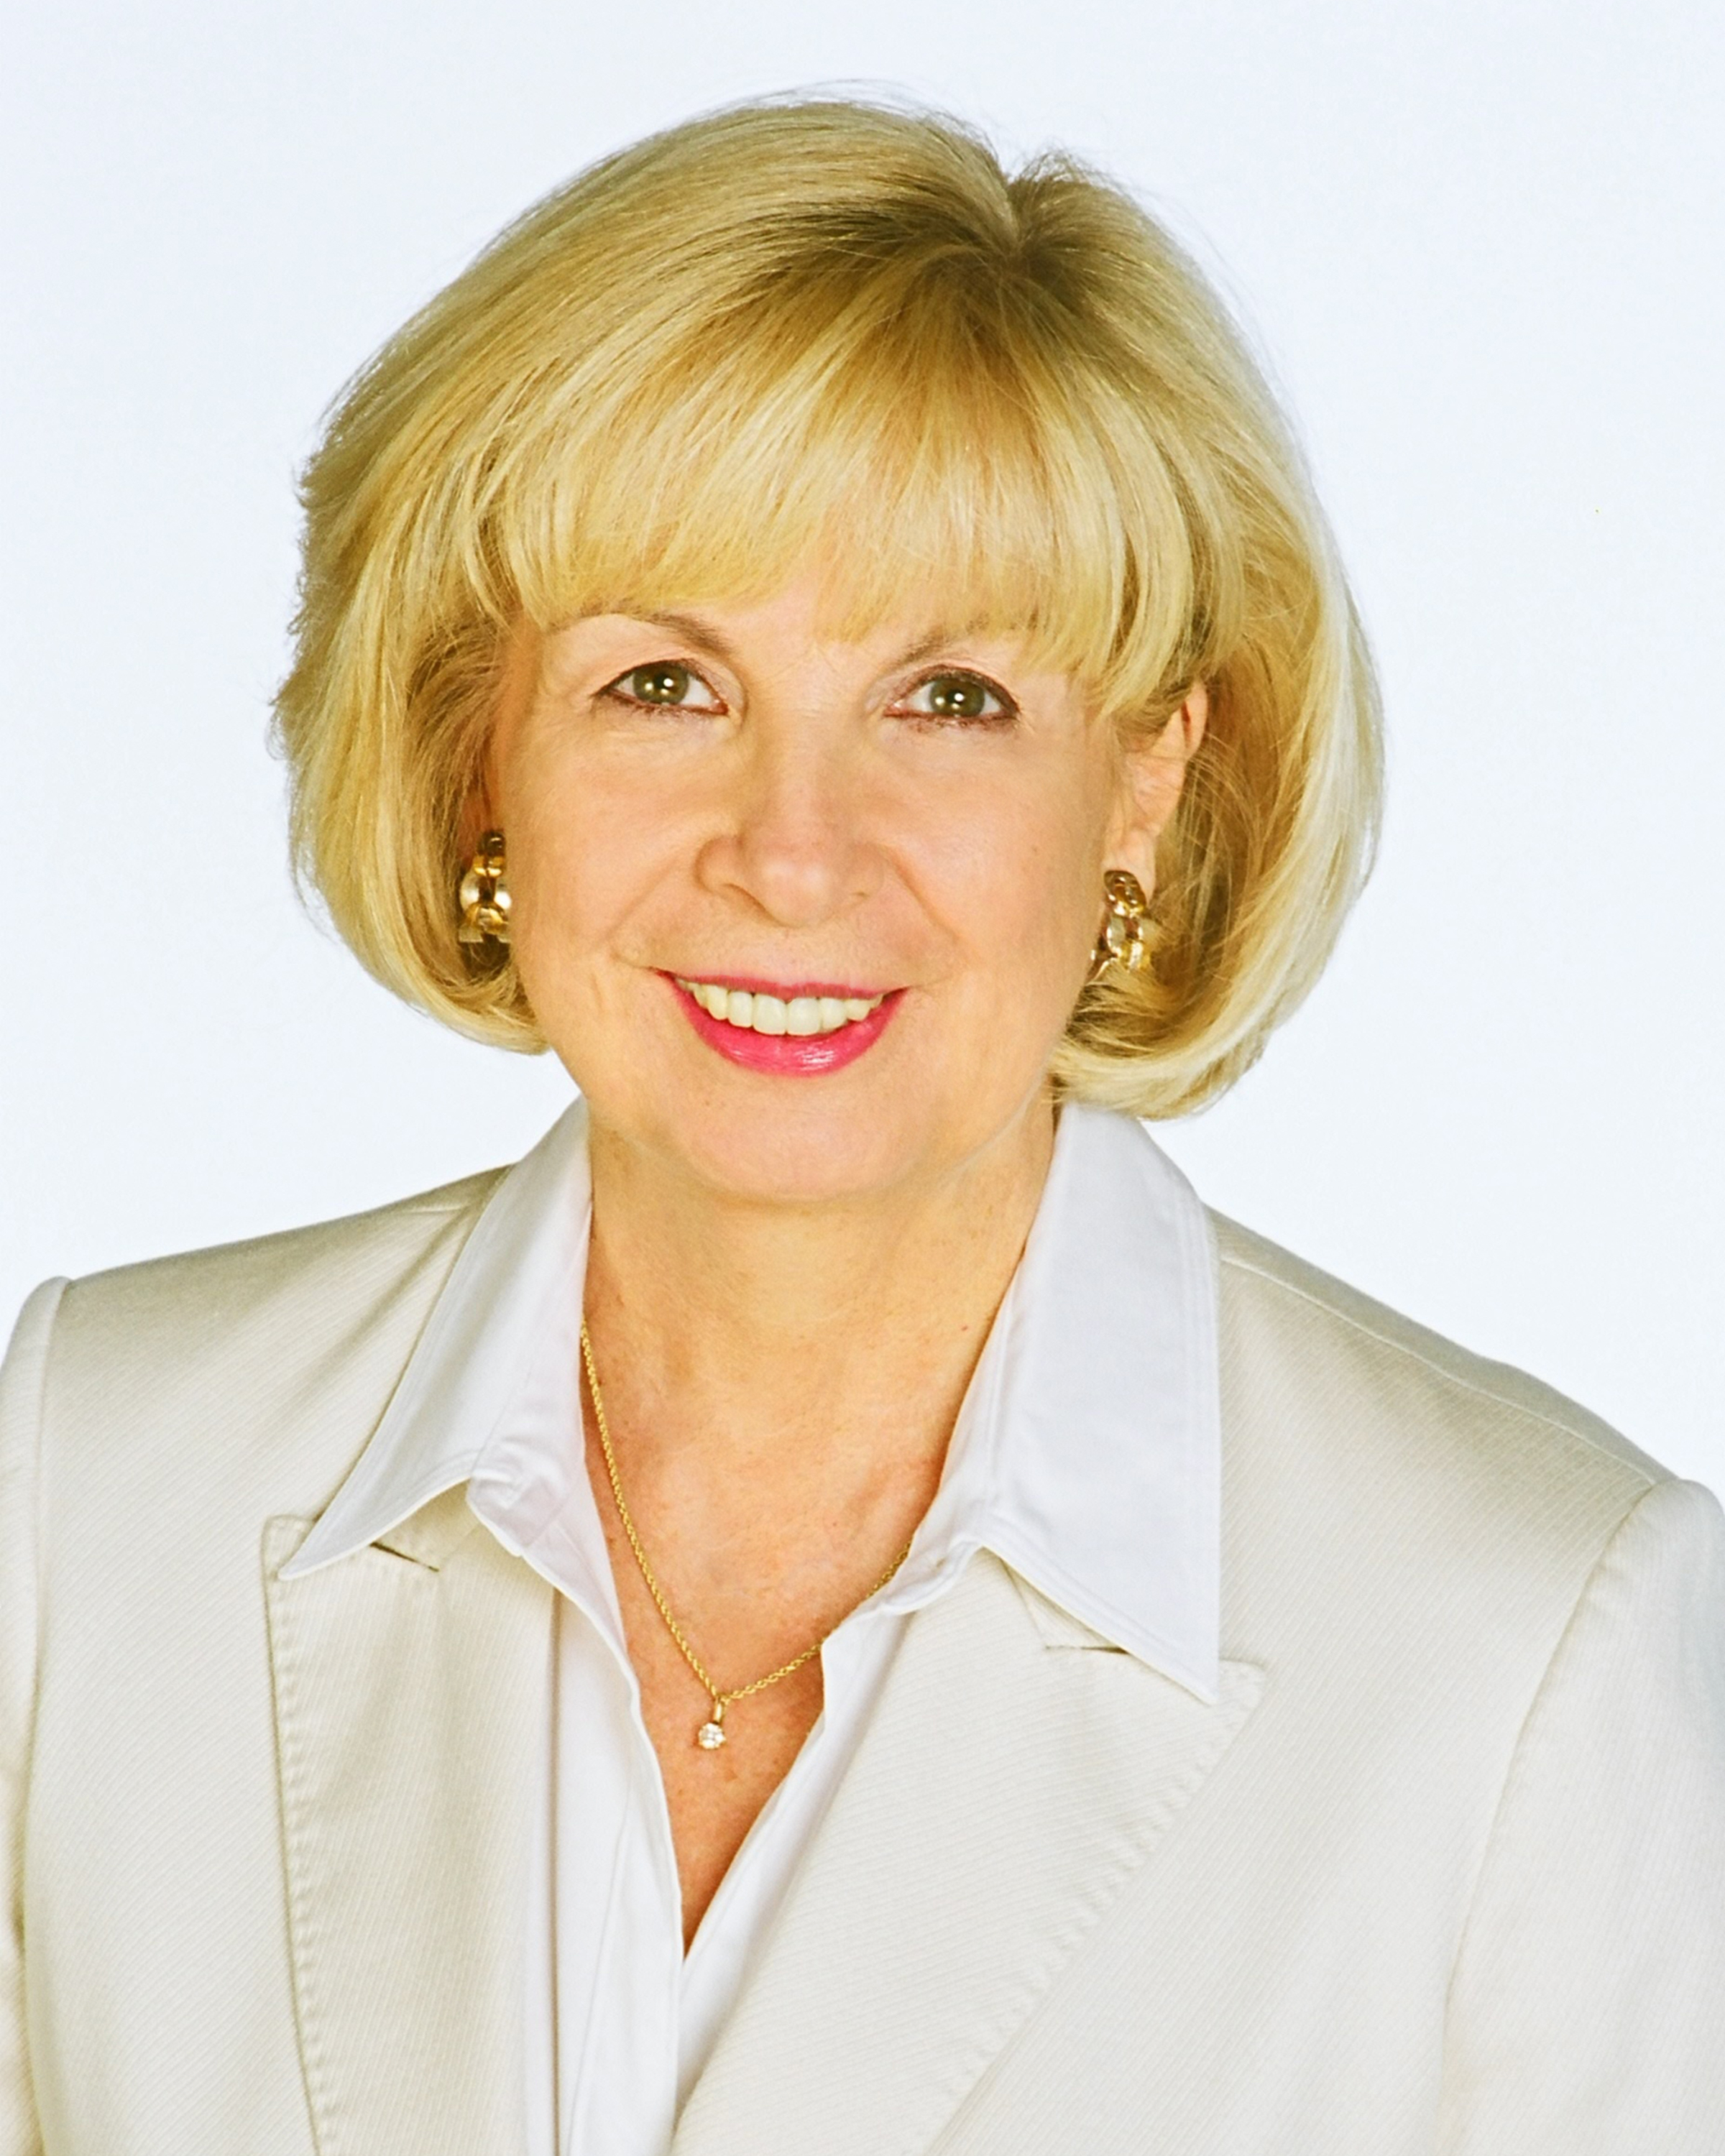 Kathy-Osborn-Head-Shot.jpg